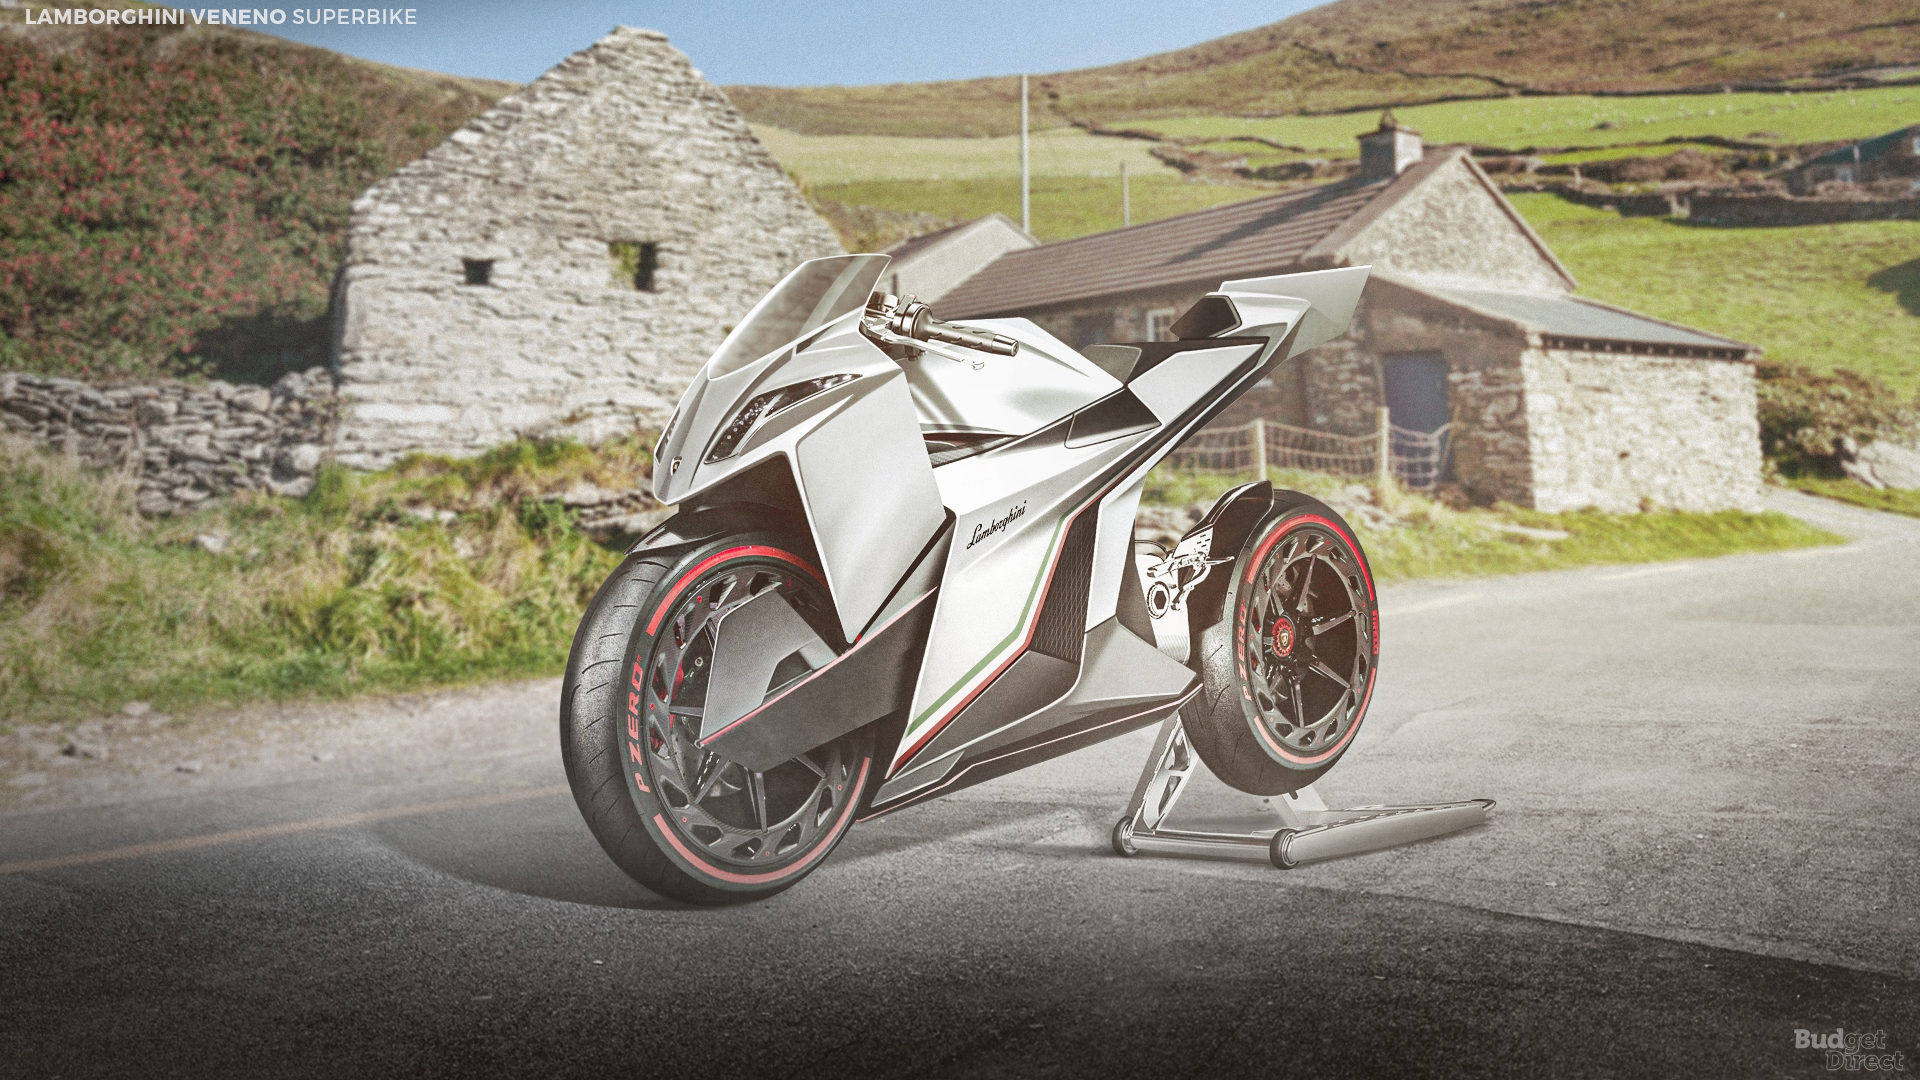 What if supercar brands made superbikes? Let's not forget the Lamborghini, here's one based on the Veneno.